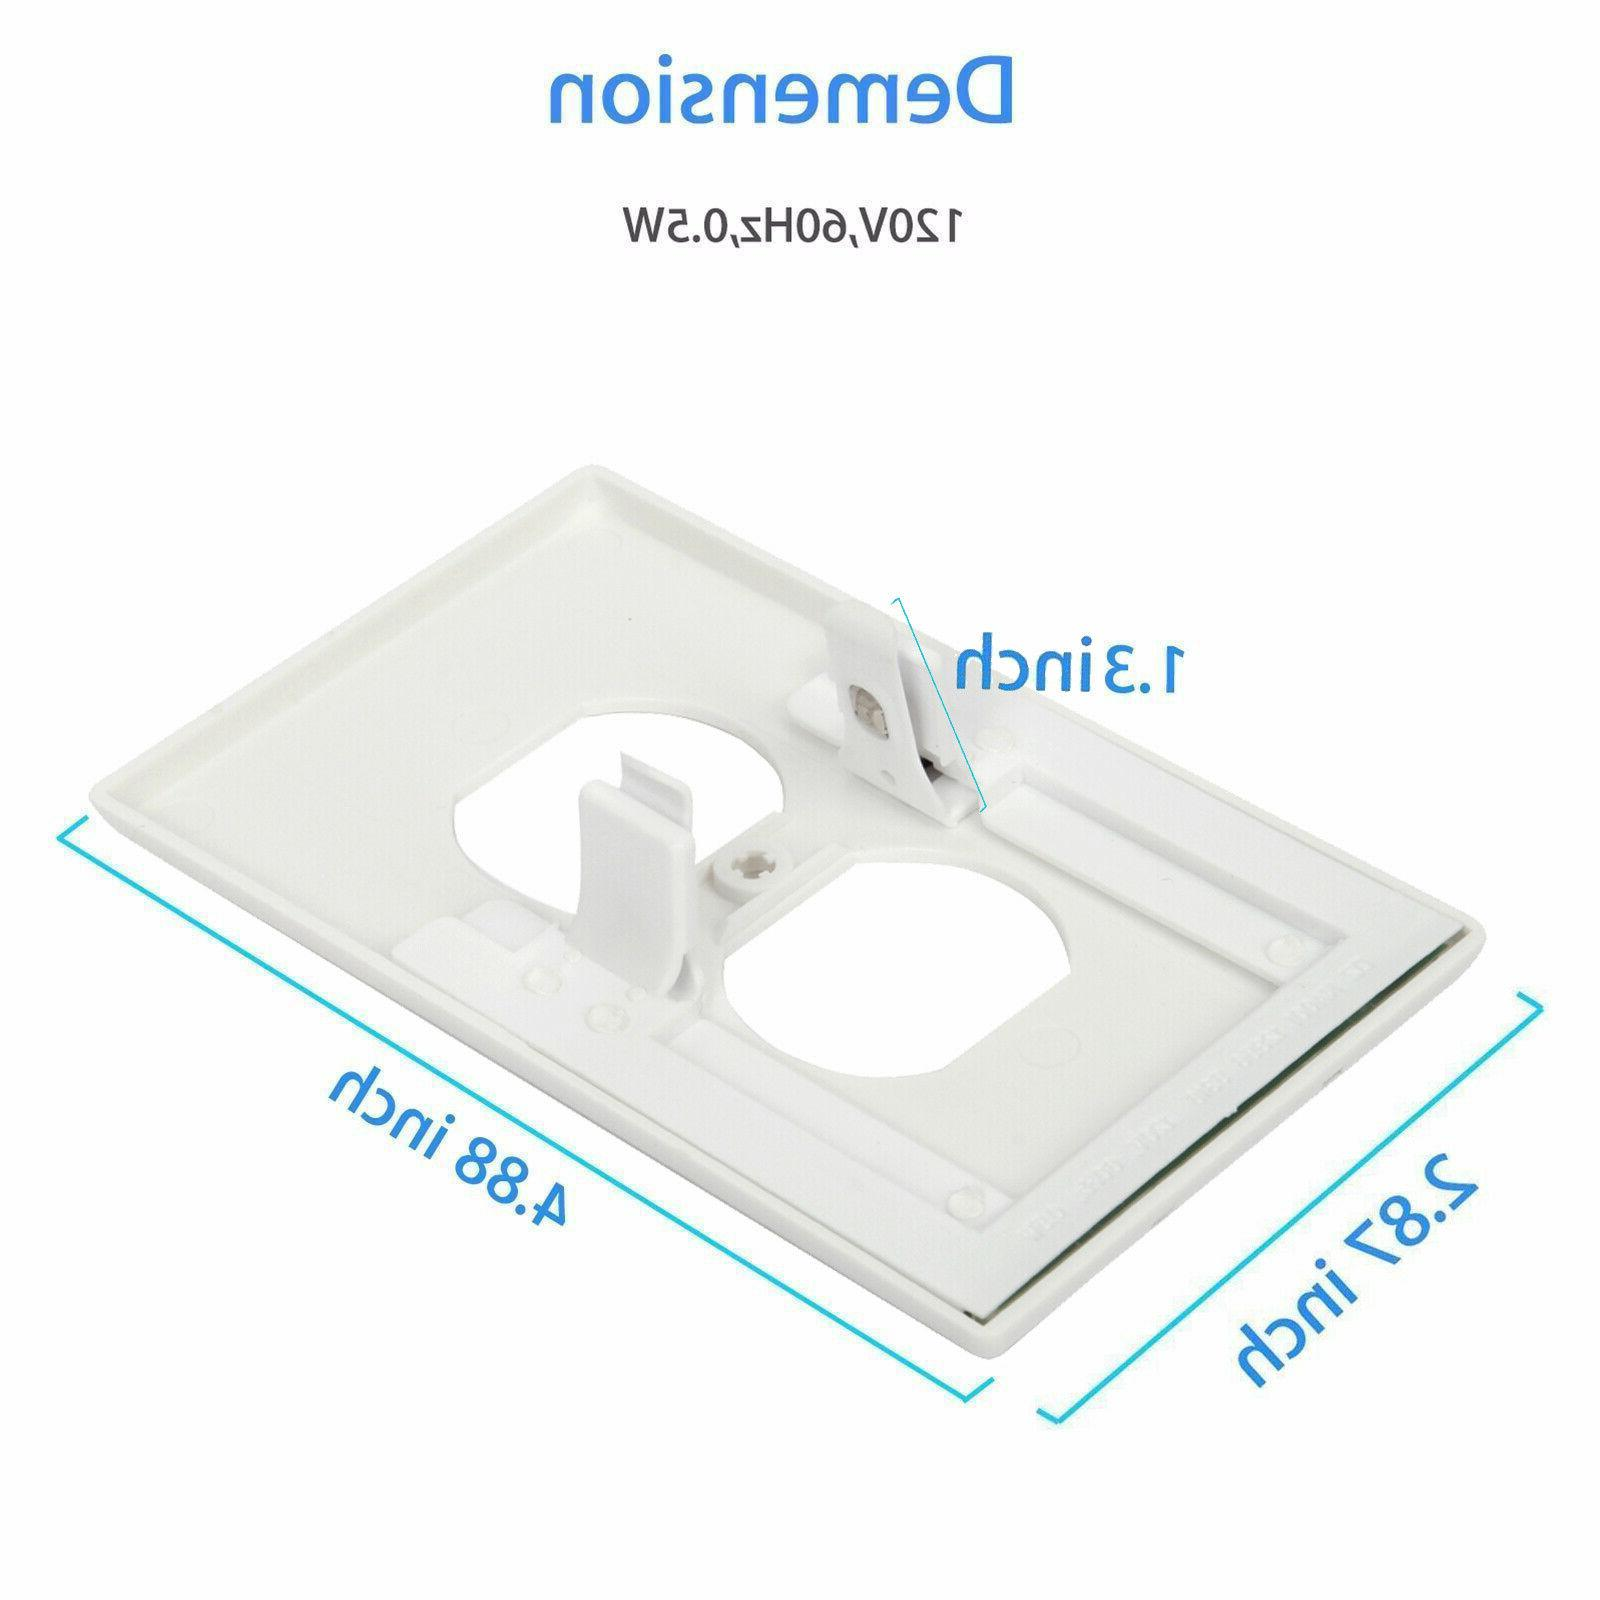 Pack 5 Outlet Wall Plate Led Night Light Cover W/ Ambient Light Sensor